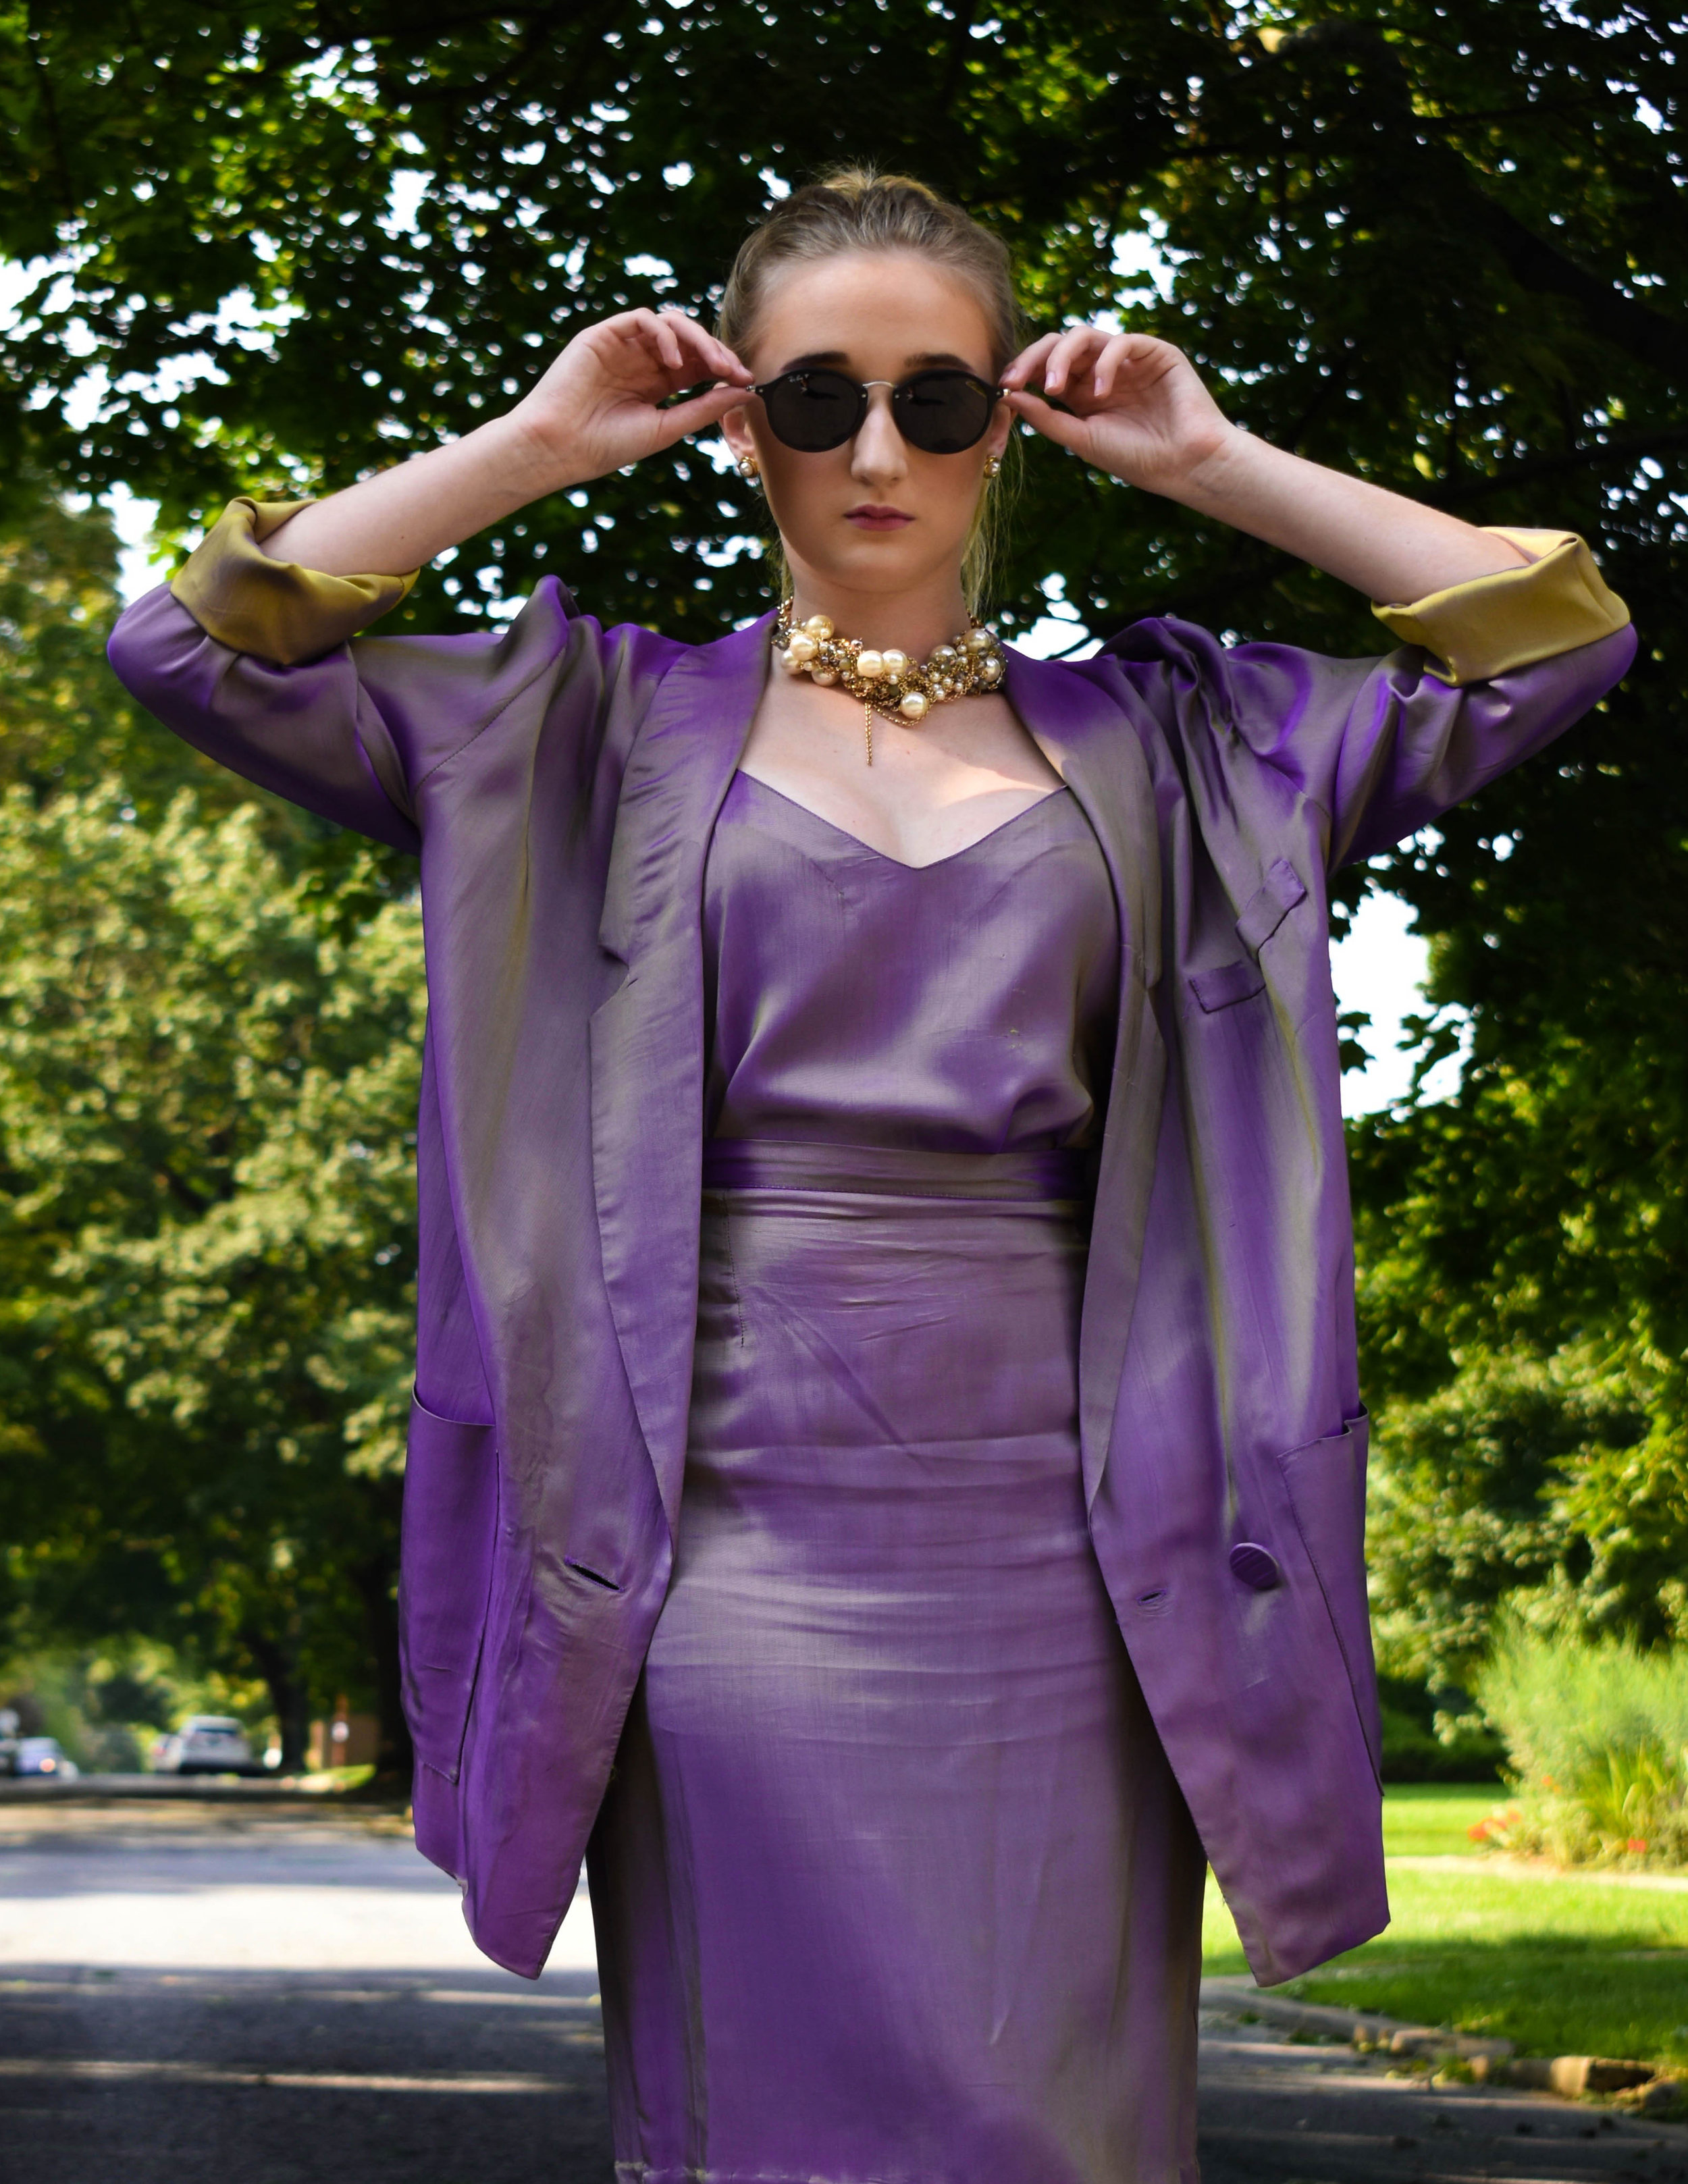 purple suit4.jpg